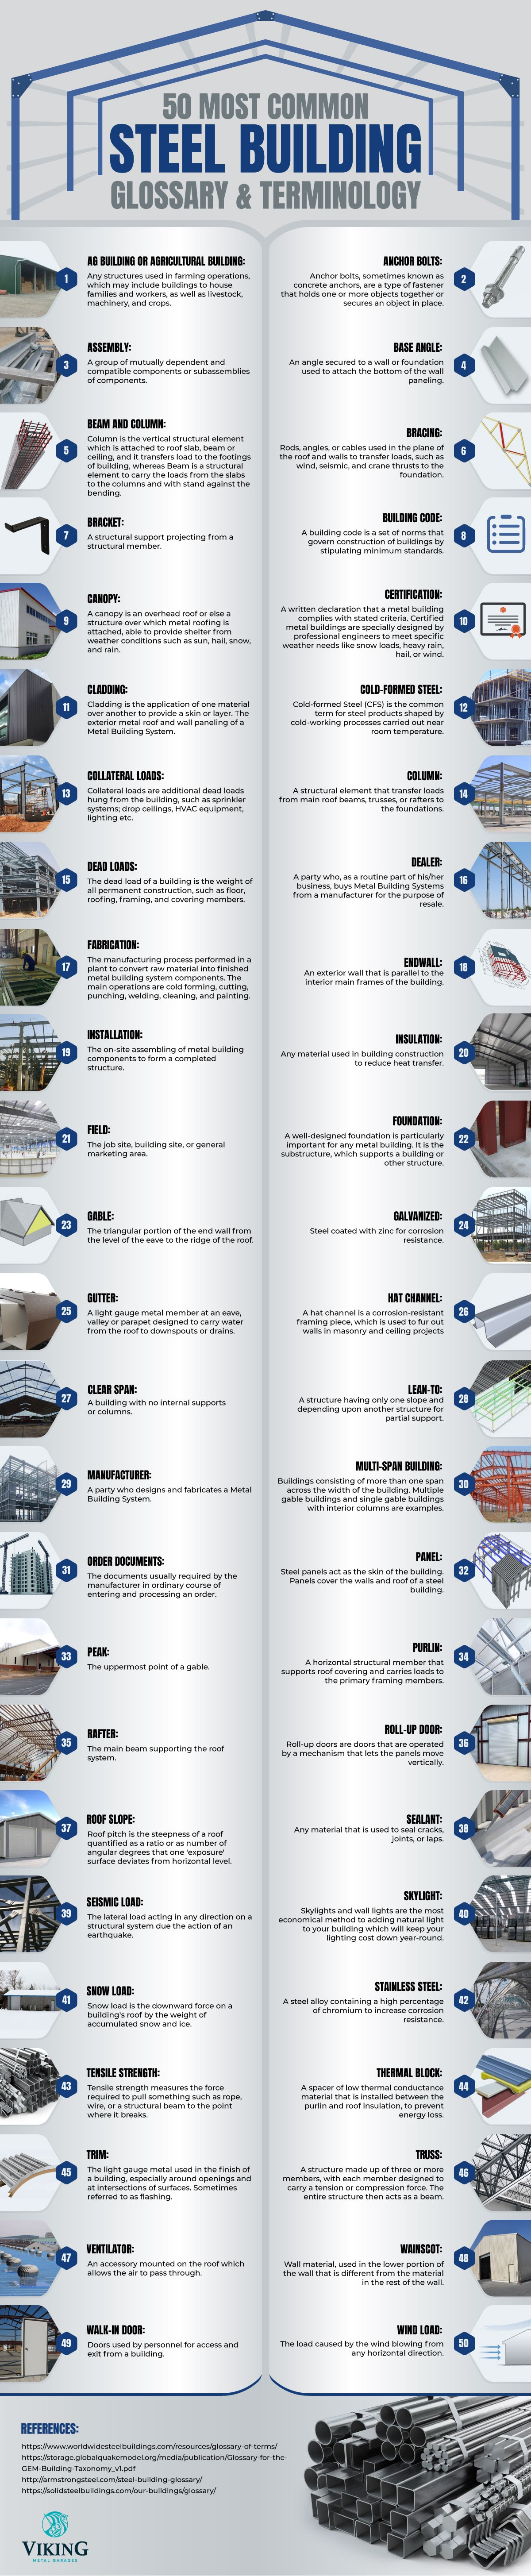 50-most-common-steel-building-glossary-terminology-infographic